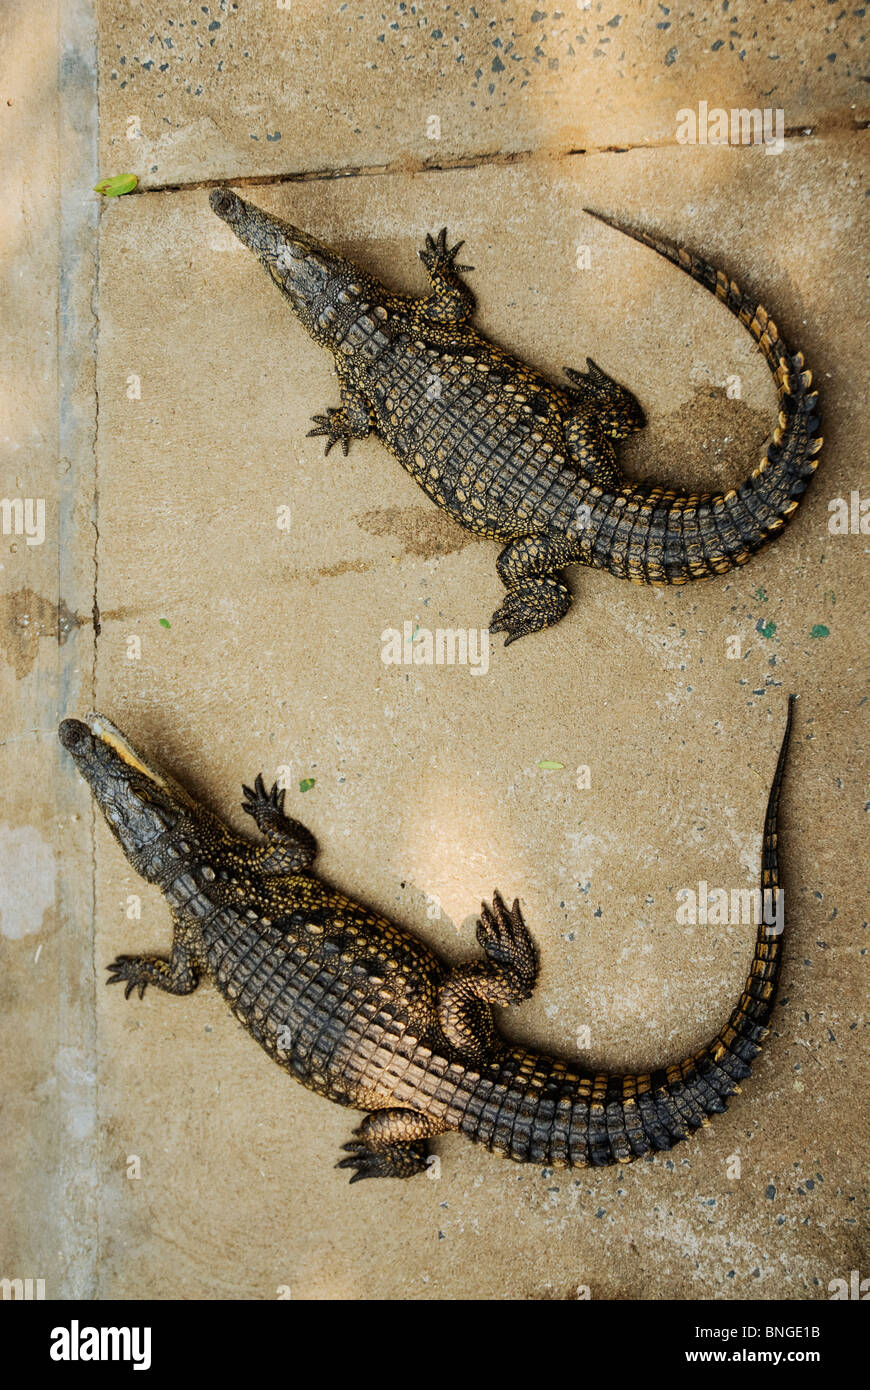 Two juvenile crocodiles lying next to each other. - Stock Image